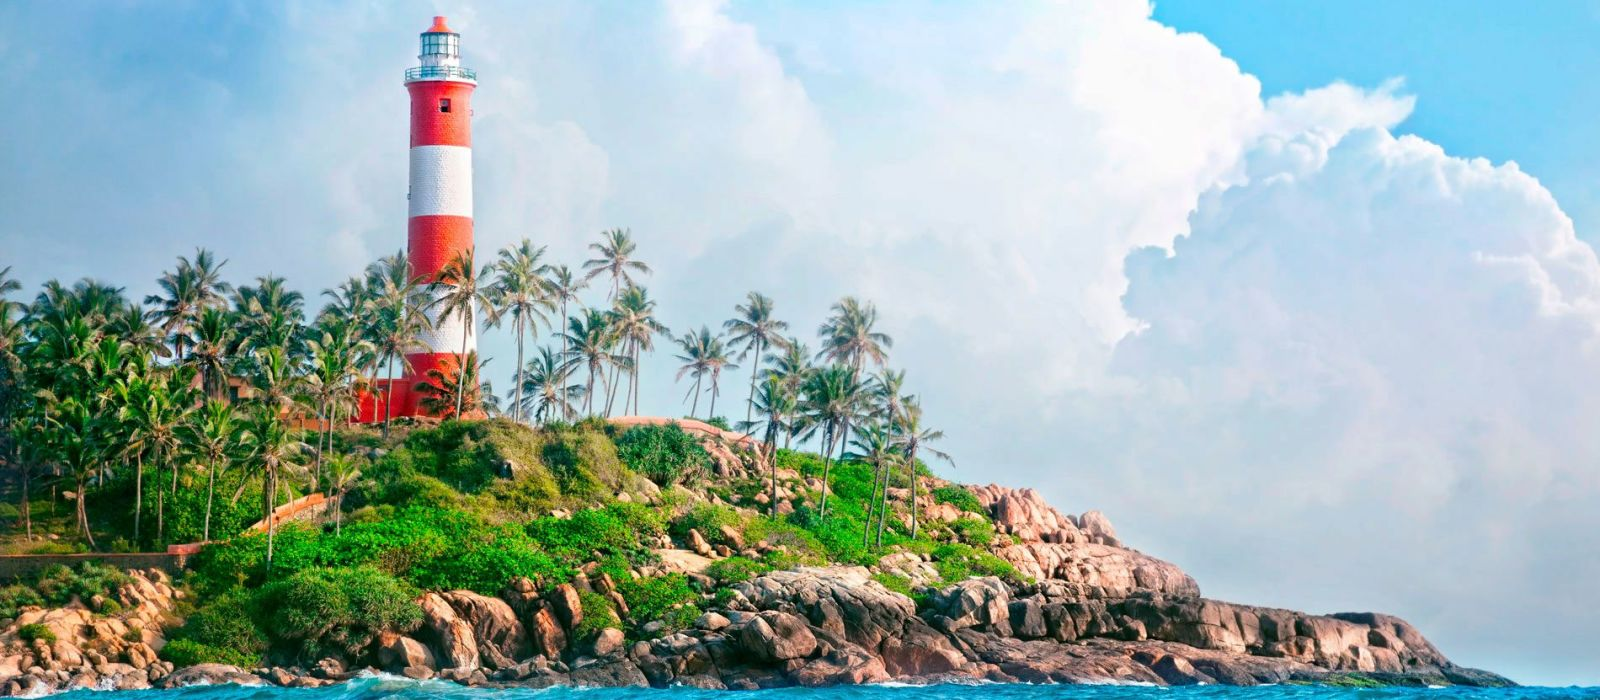 Destination Trivandrum Islands & Beaches